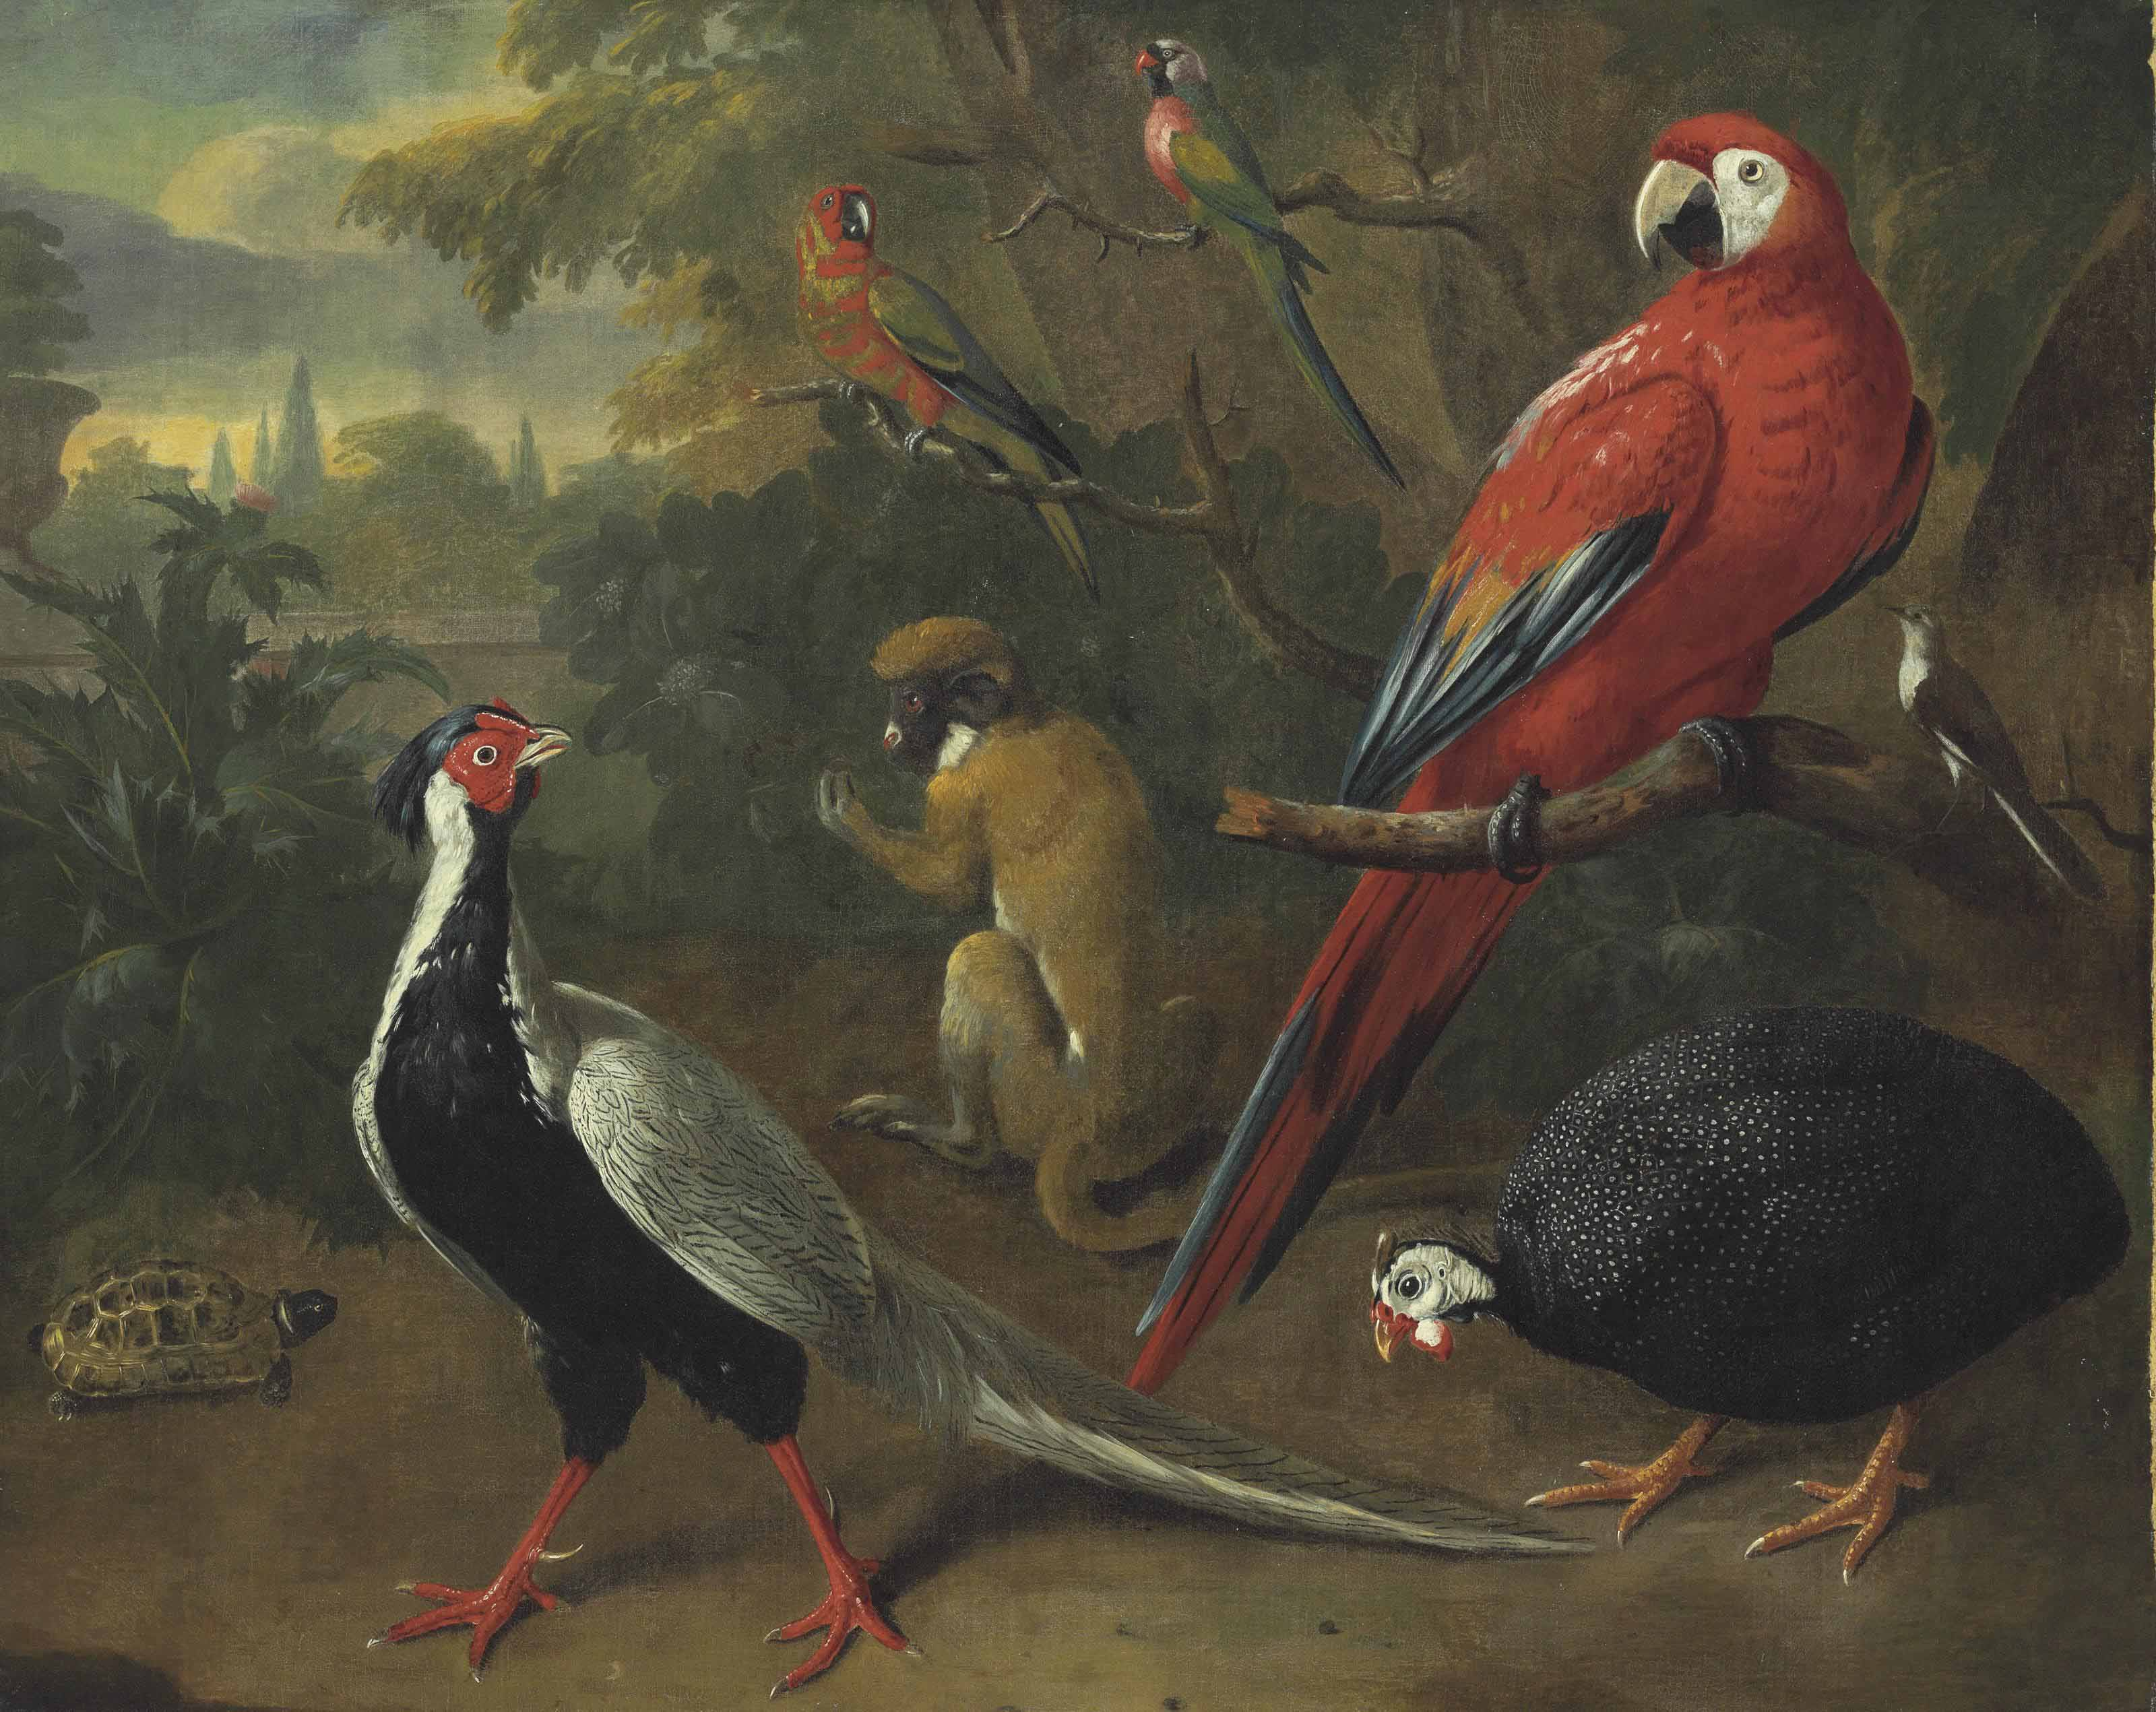 https://www.christies.com/img/LotImages/2015/NYR/2015_NYR_03747_0041_000(charles_collins_a_scarlet_macaw_helmeted_guineafowl_silver_pheasant_an).jpg